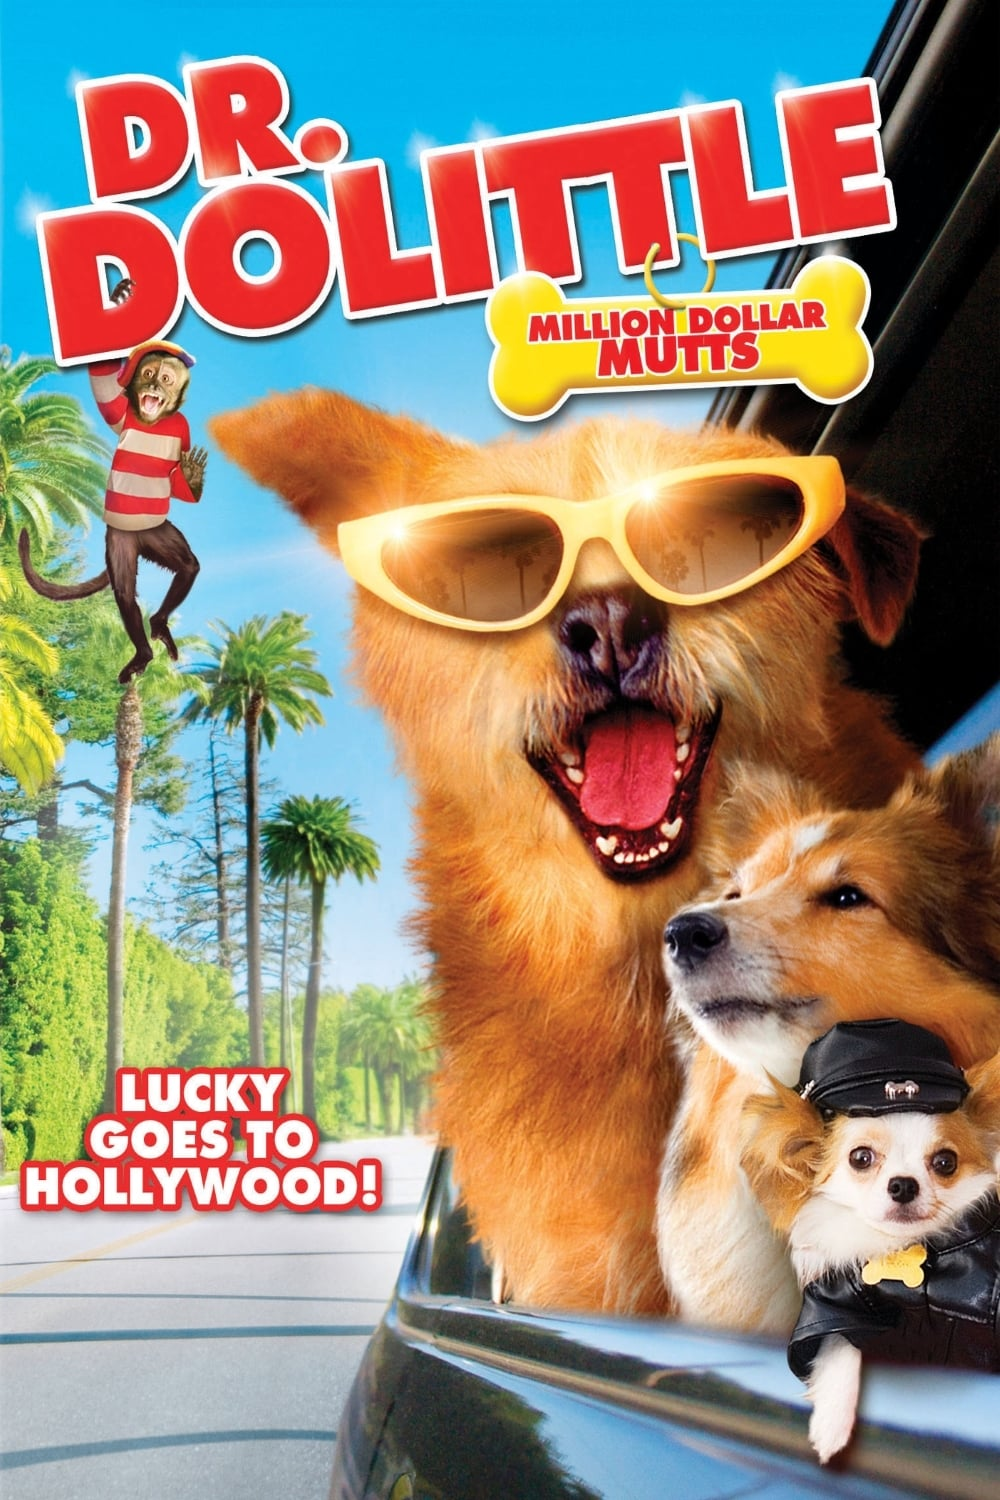 Image Dr. Dolittle: Million Dollar Mutts